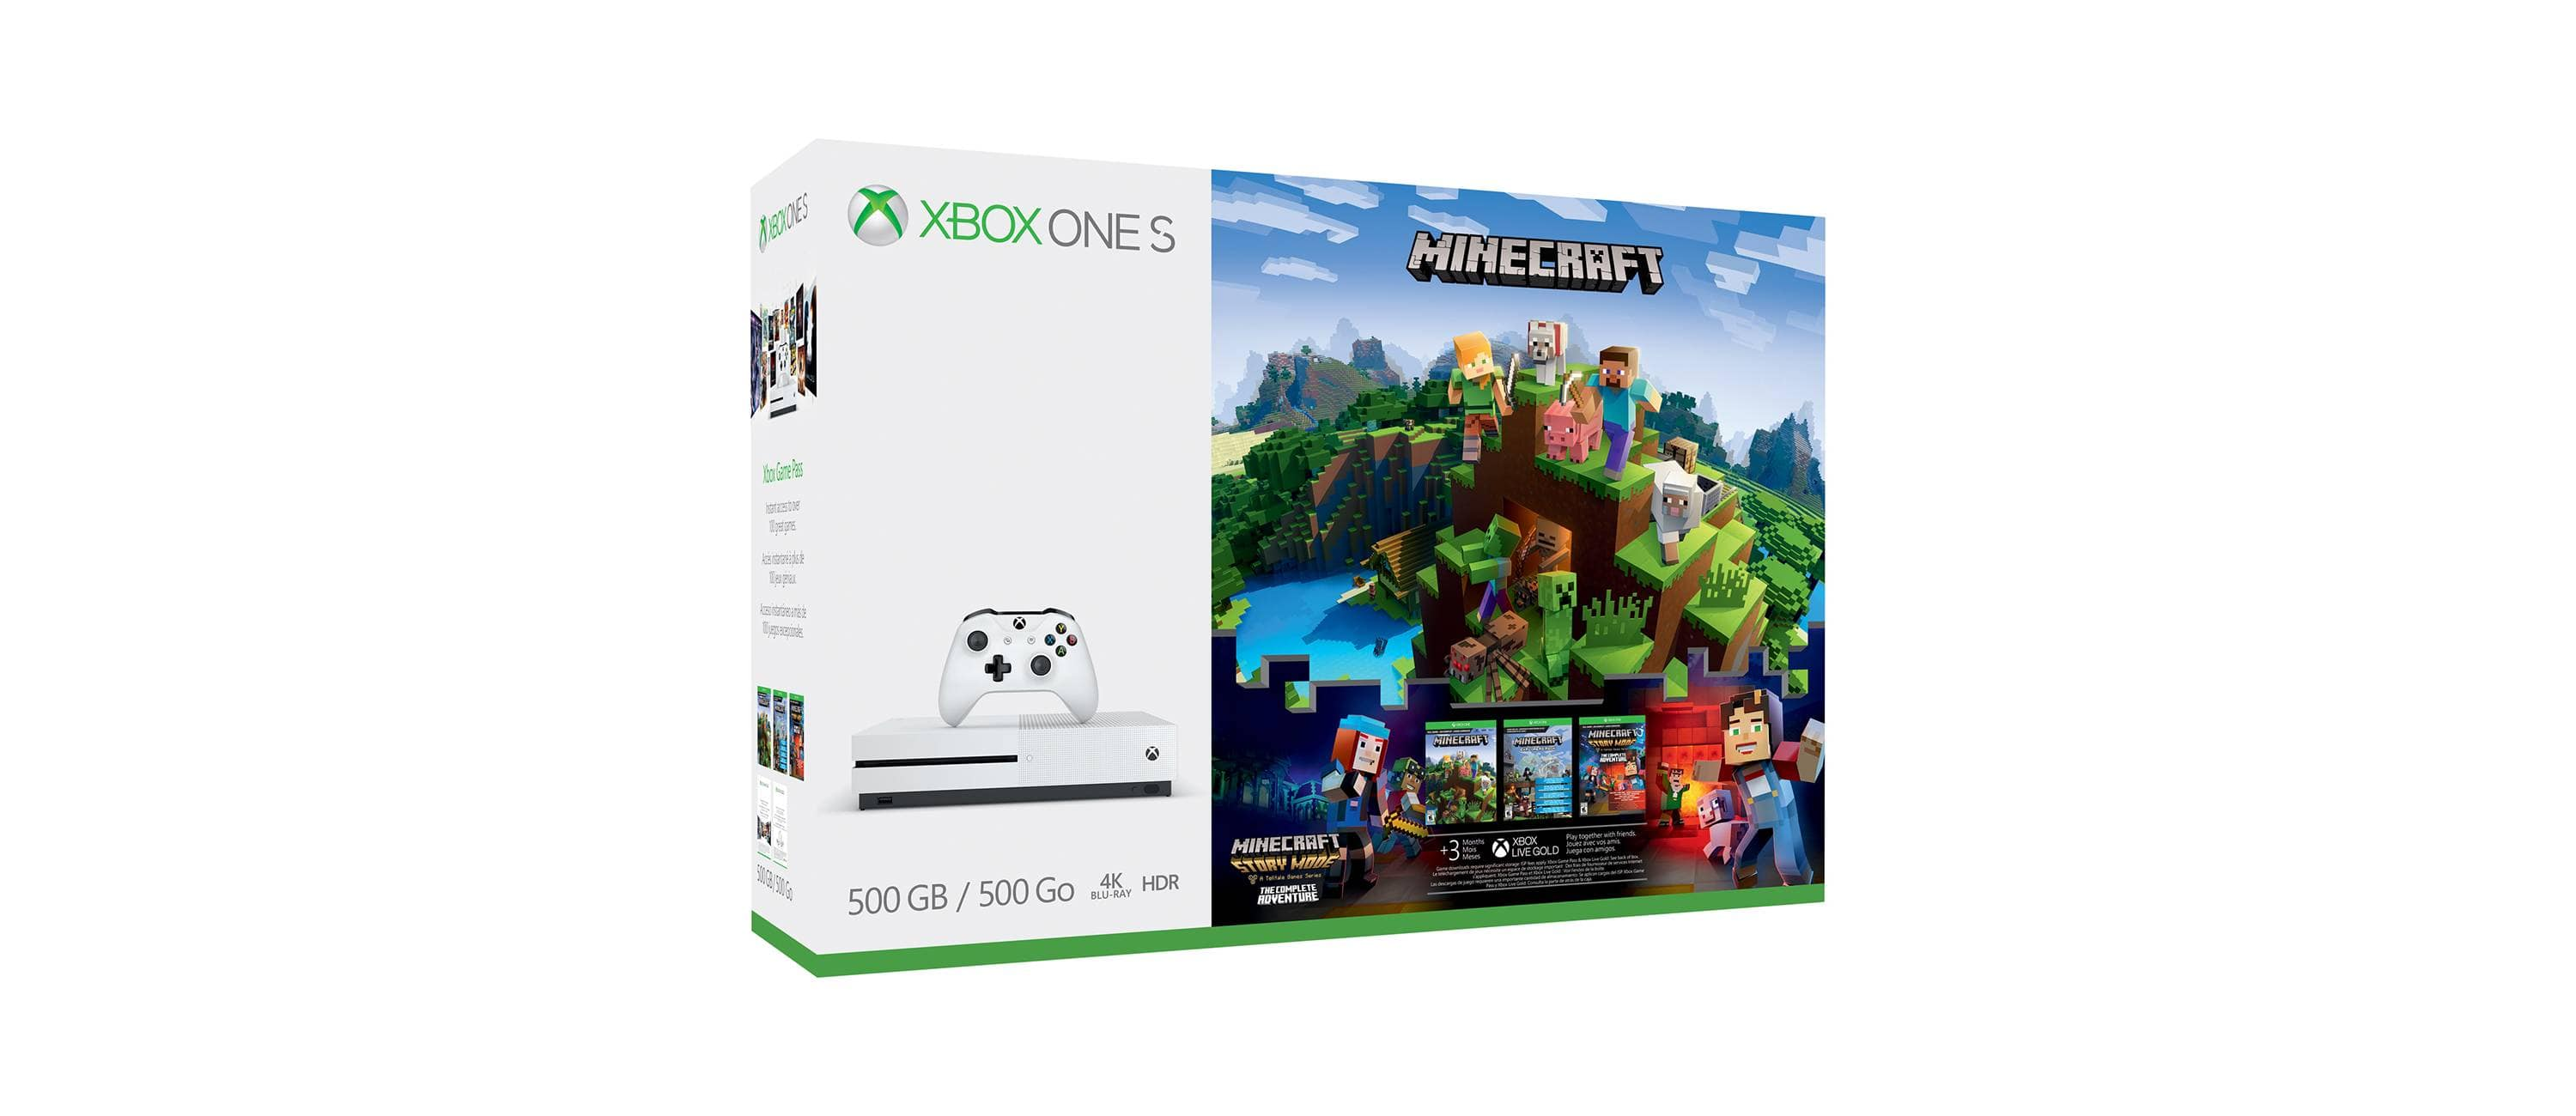 Xbox One S 500GB Minecraft Complete Adventure Bundle @ Target $199.99